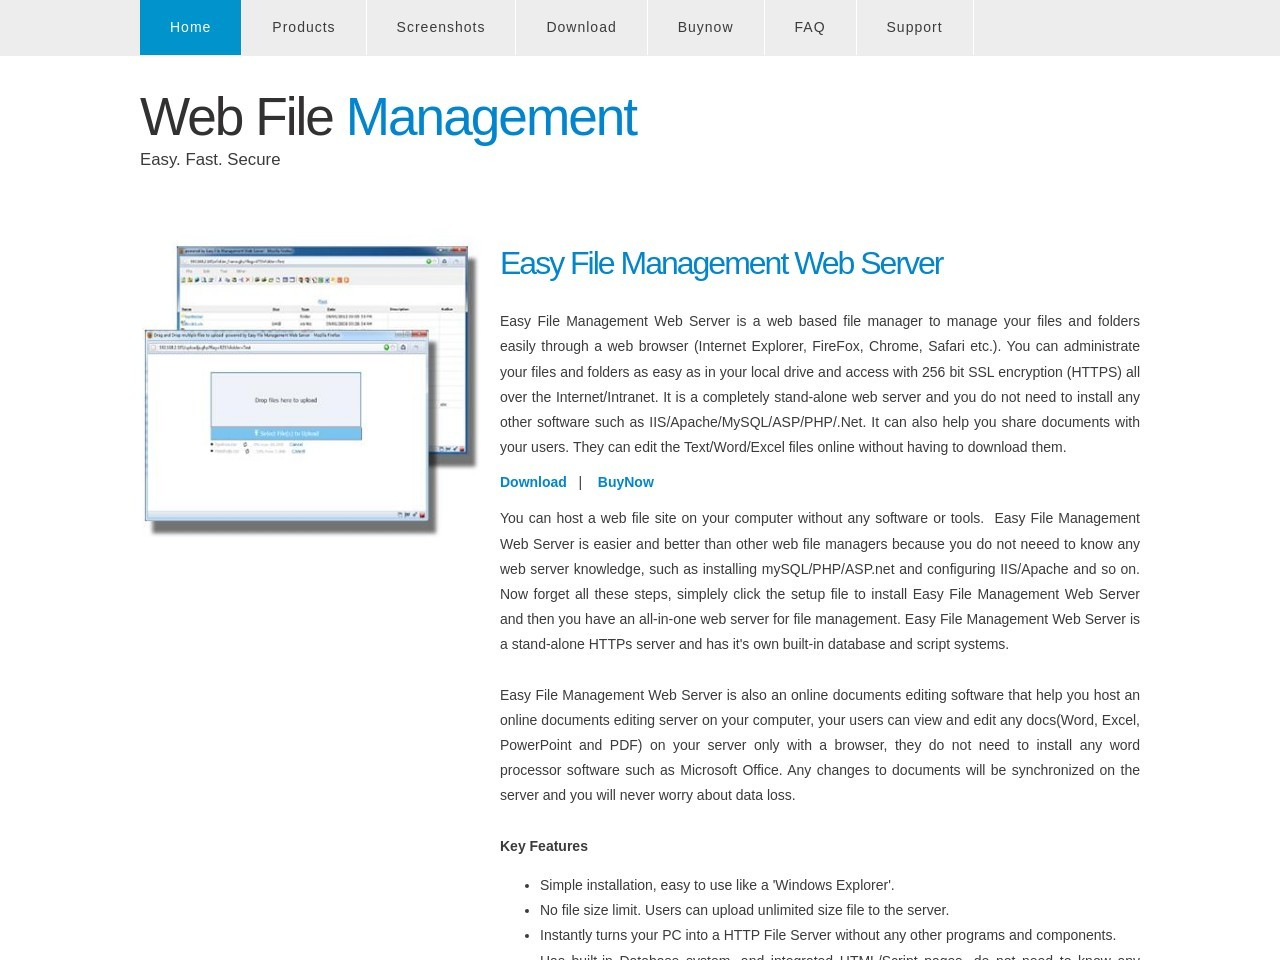 EFS Software – Web File Management